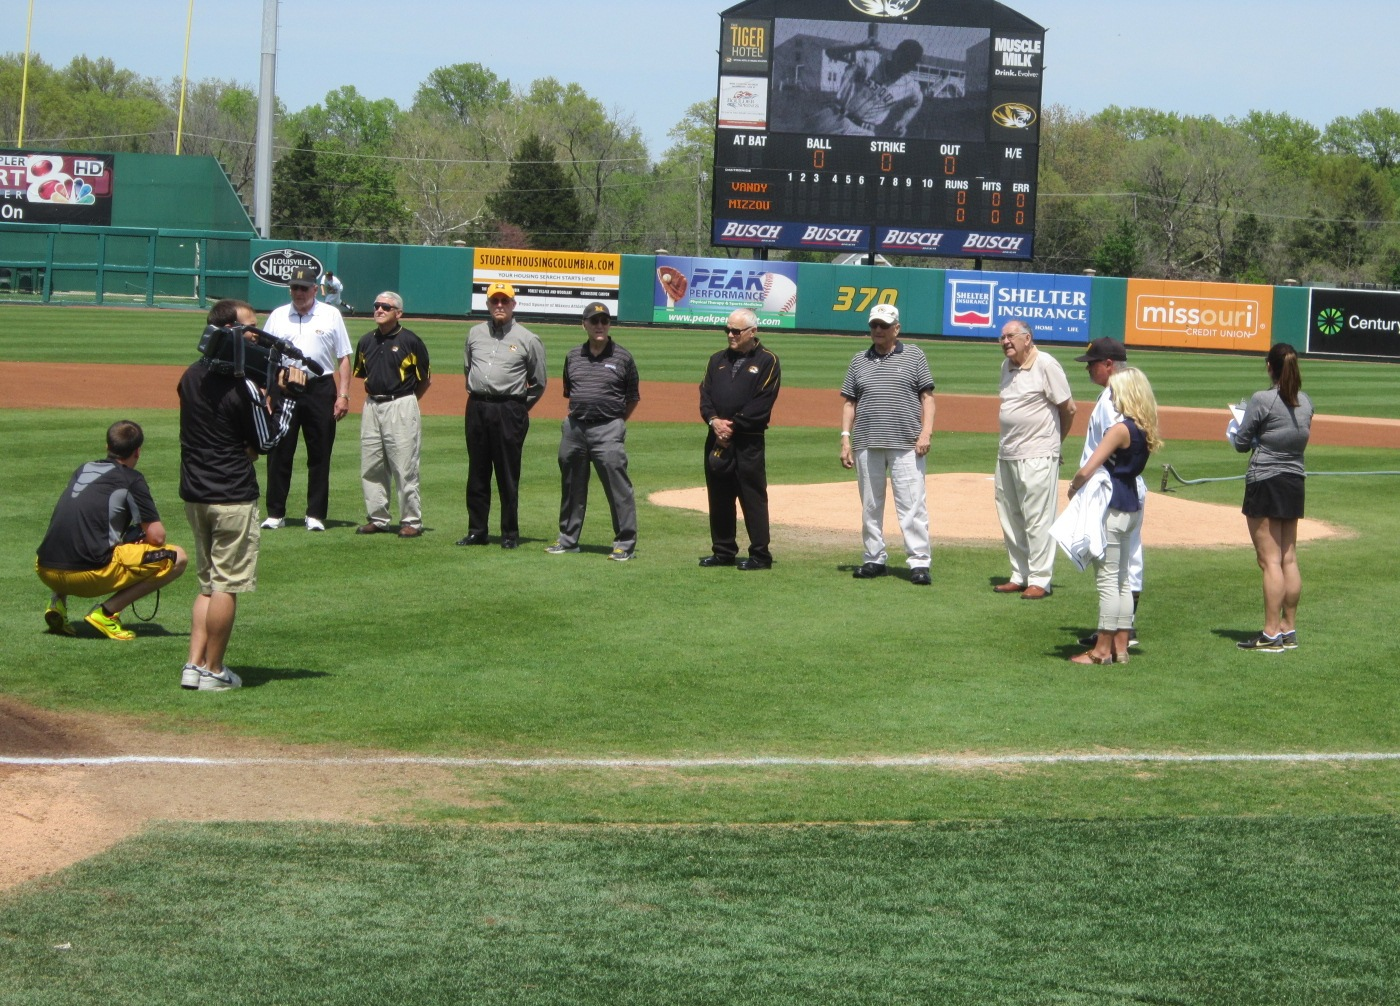 9 Mizzou 1954 CWS Champs being honored.JPG